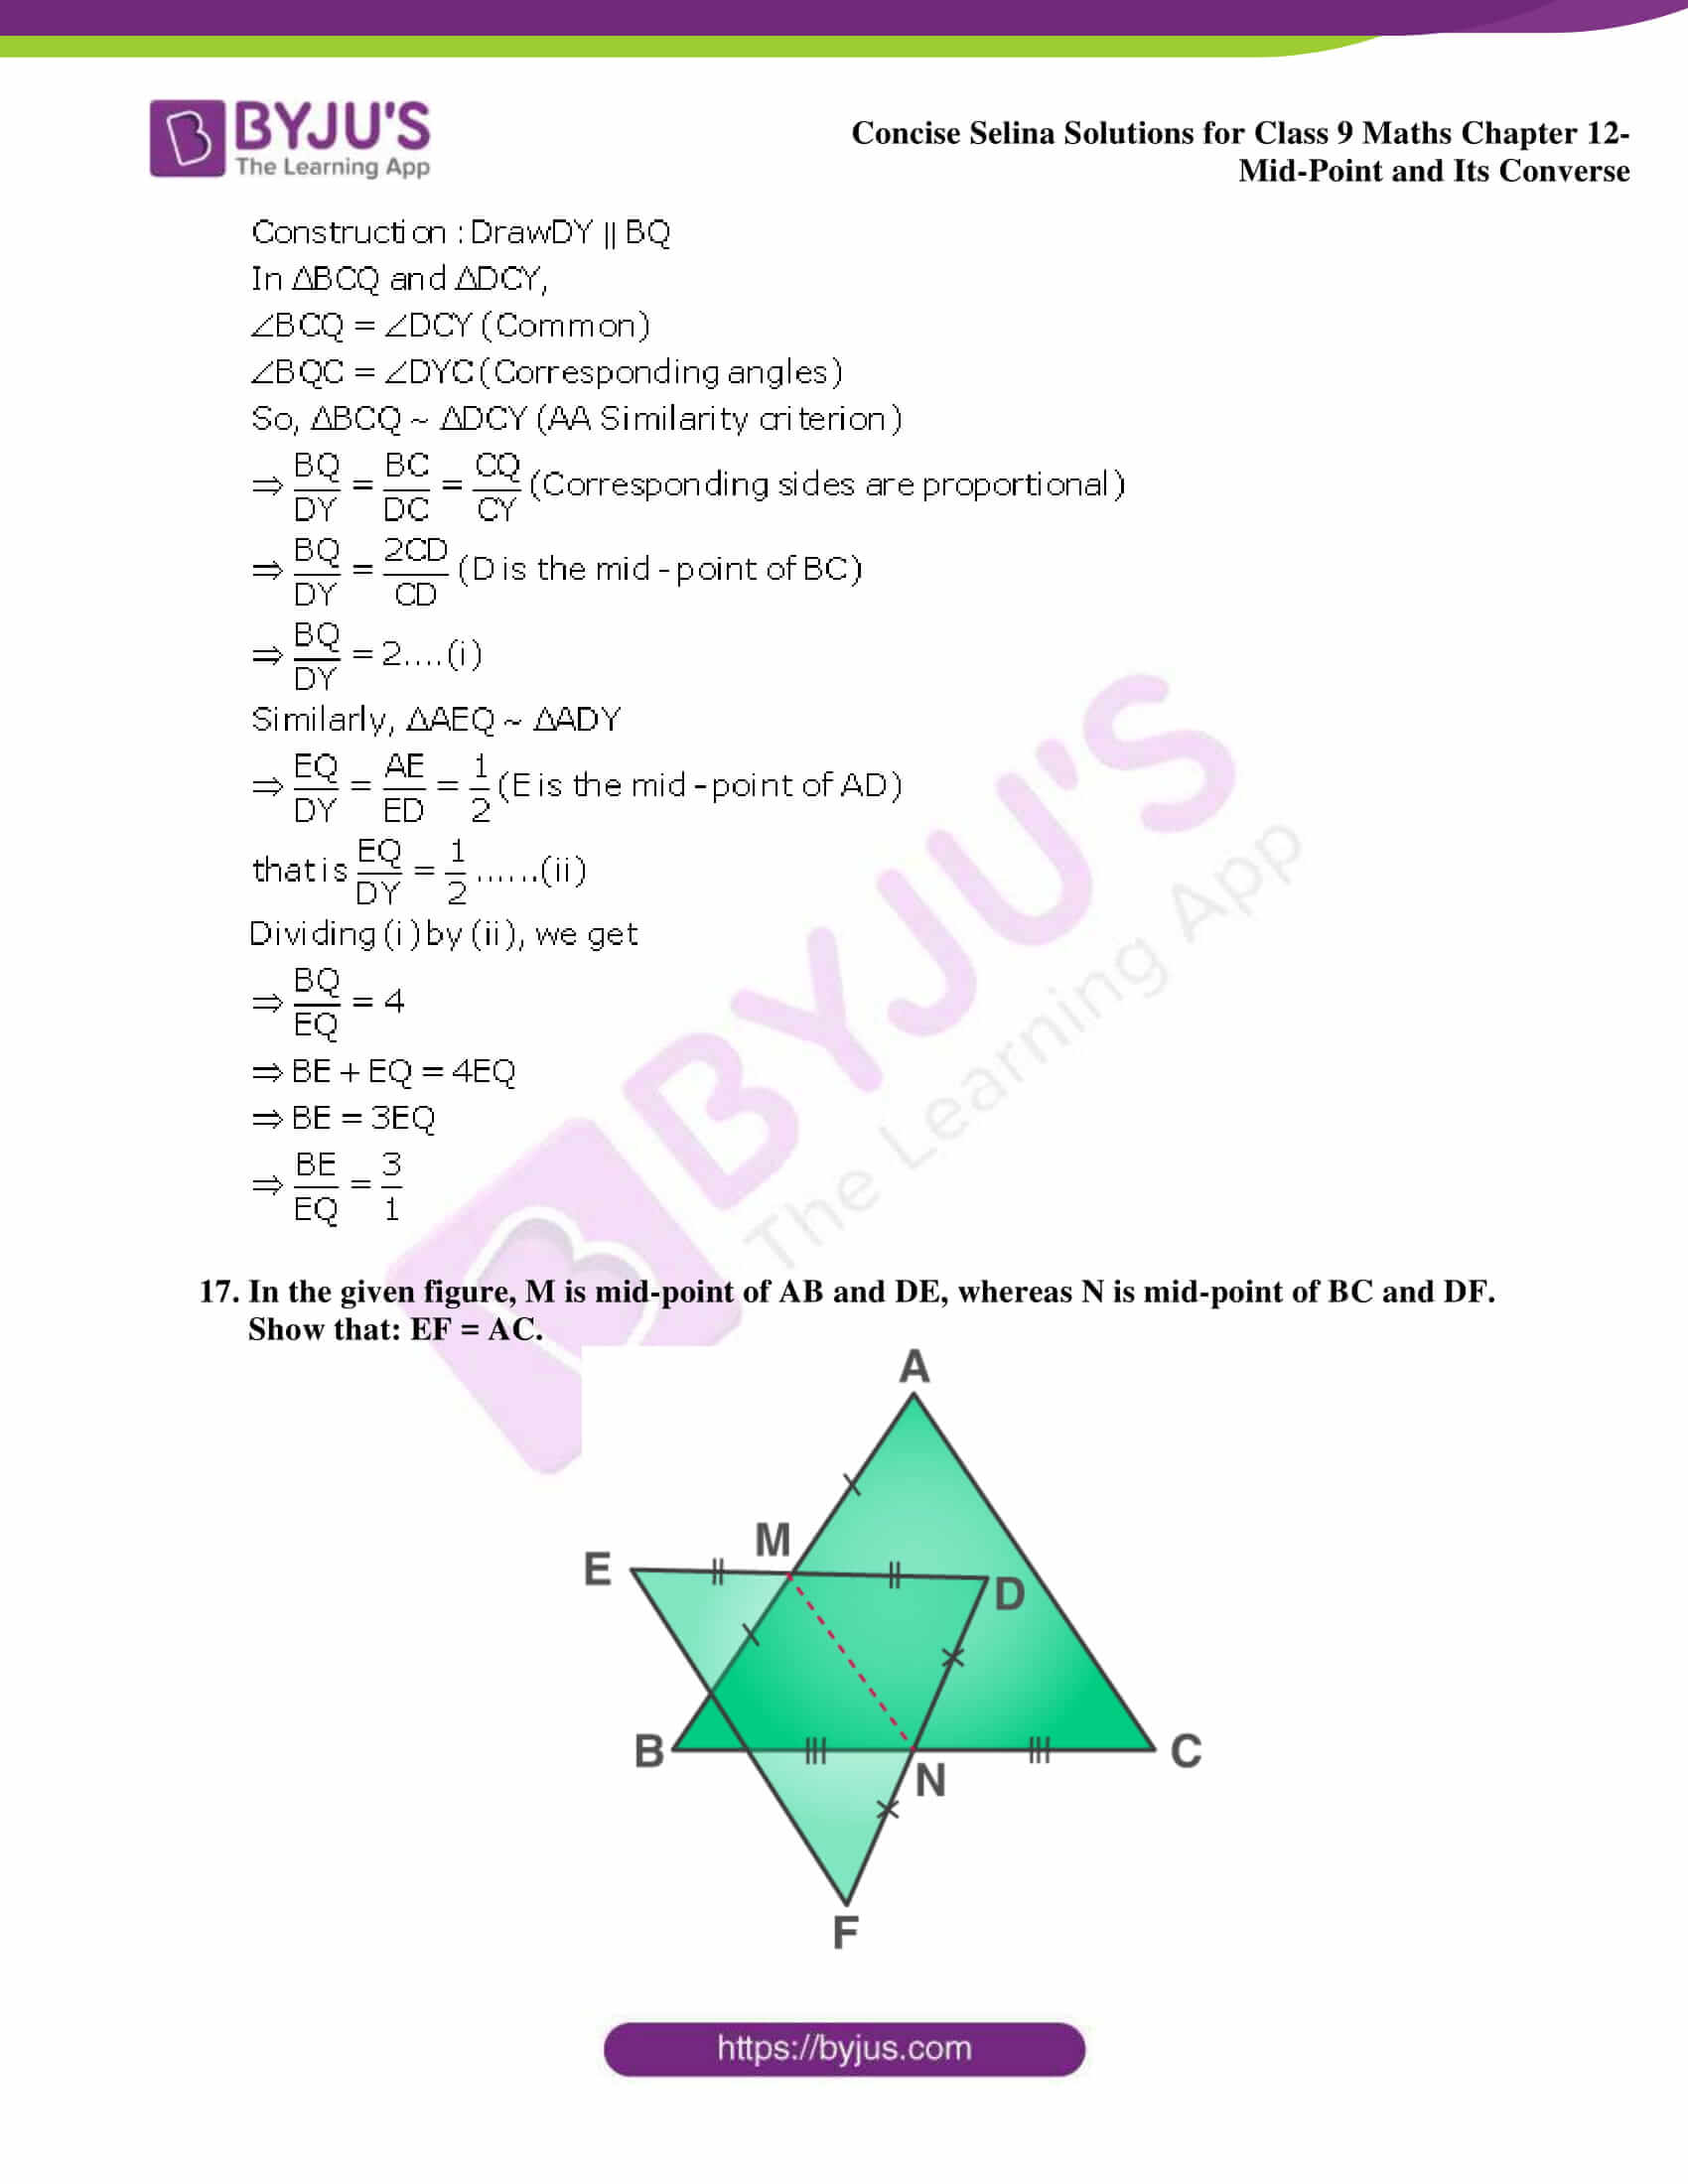 selina Solutions for Class 9 Maths Chapter 12 part 11